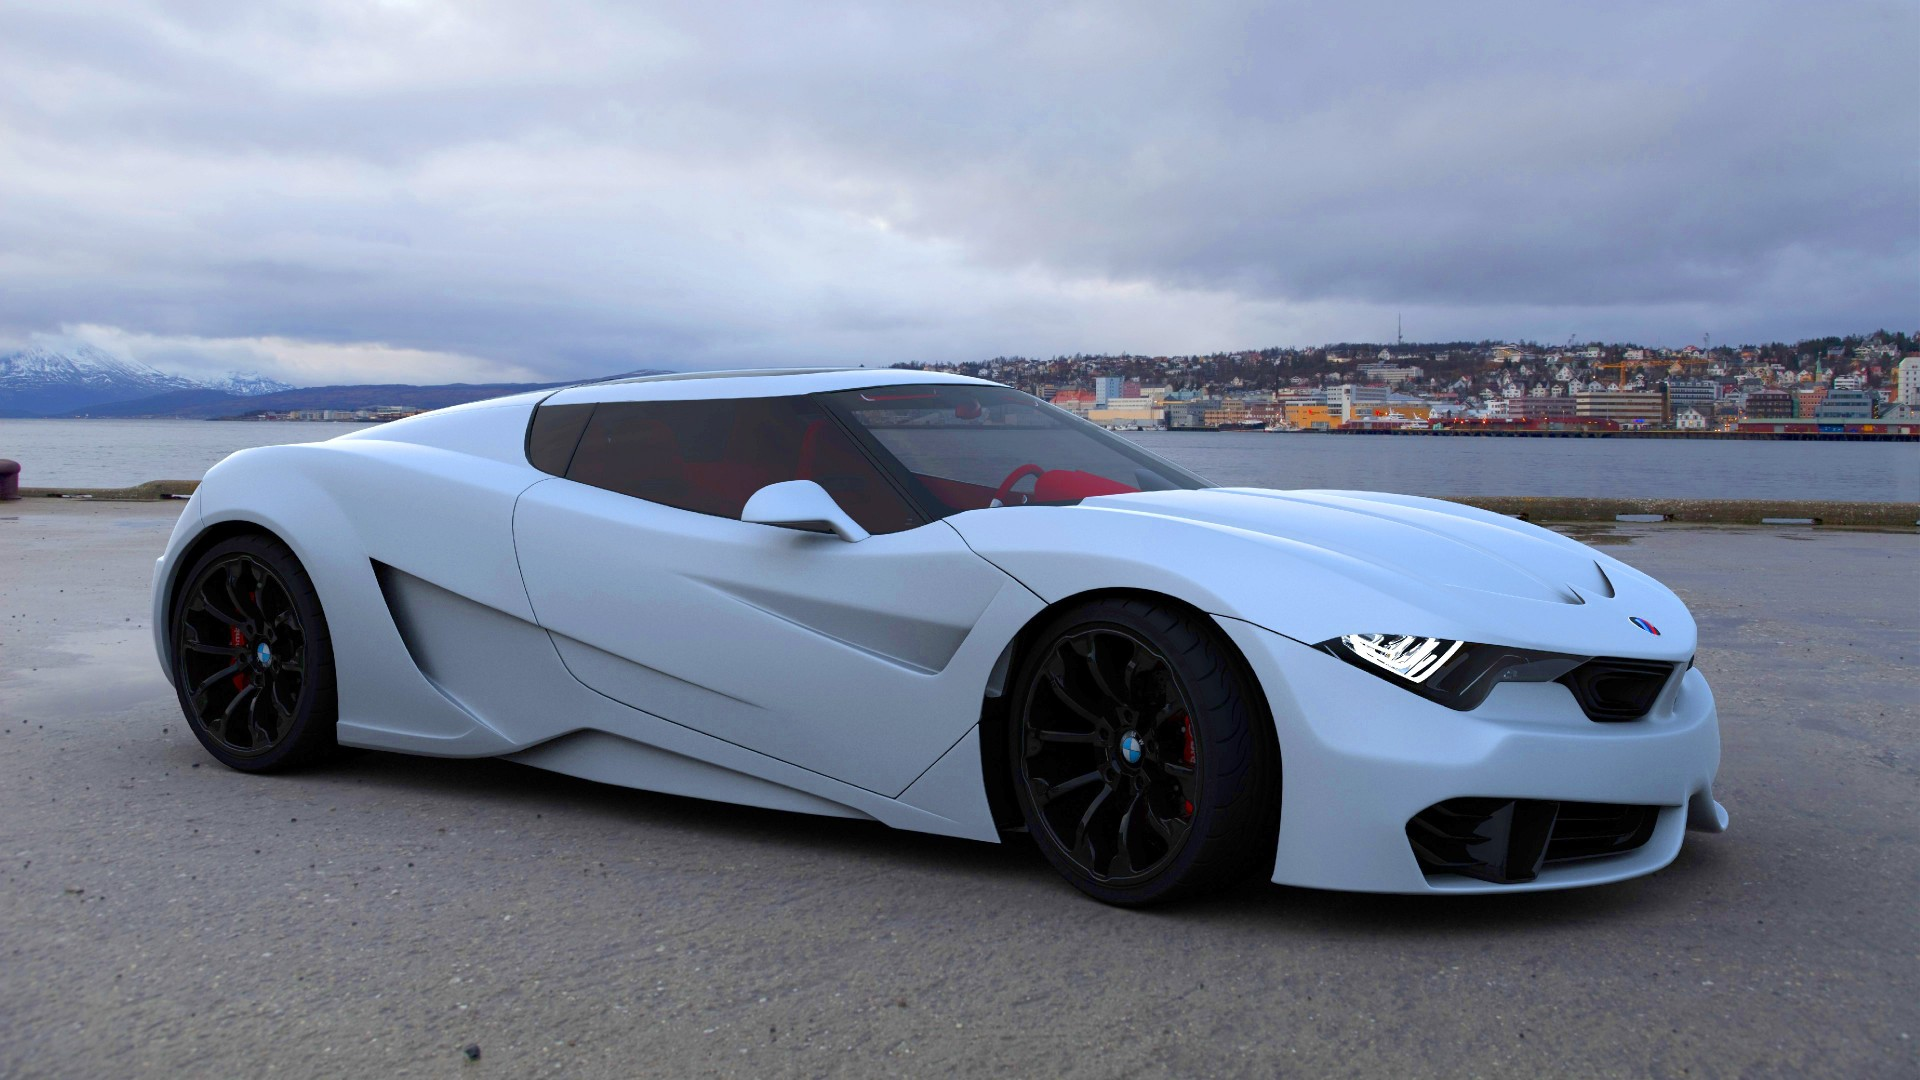 Wallpaper Bmw M9 Roadster Coupe White Cars Amp Bikes 7014